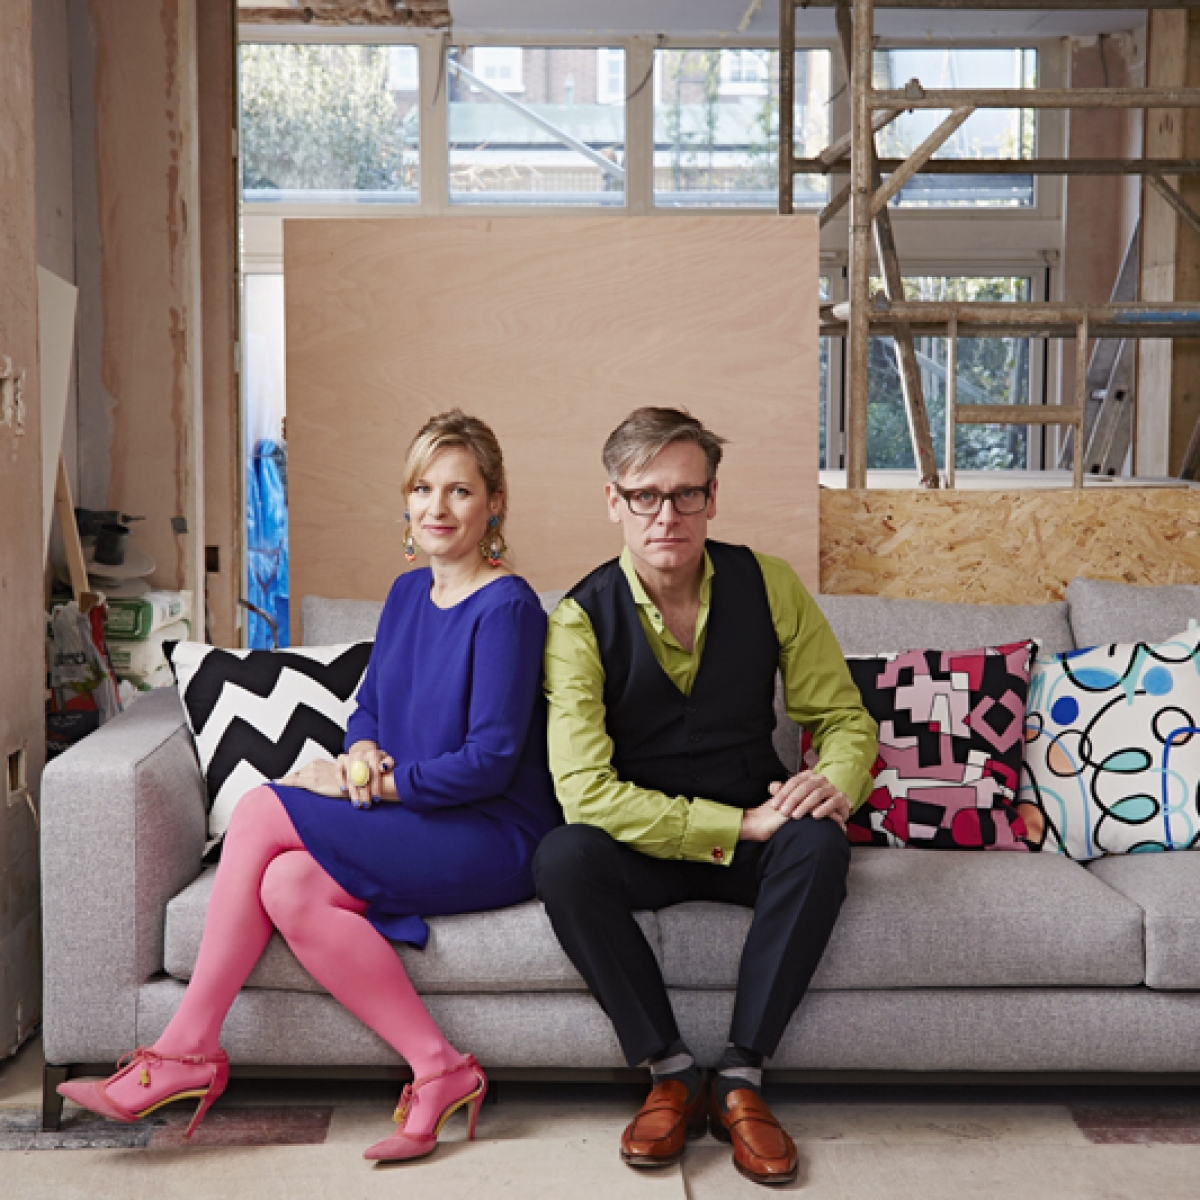 Sophie Robinson and Daniel Hopwood from series 3 of The Great Interior Design Challenge BBC2